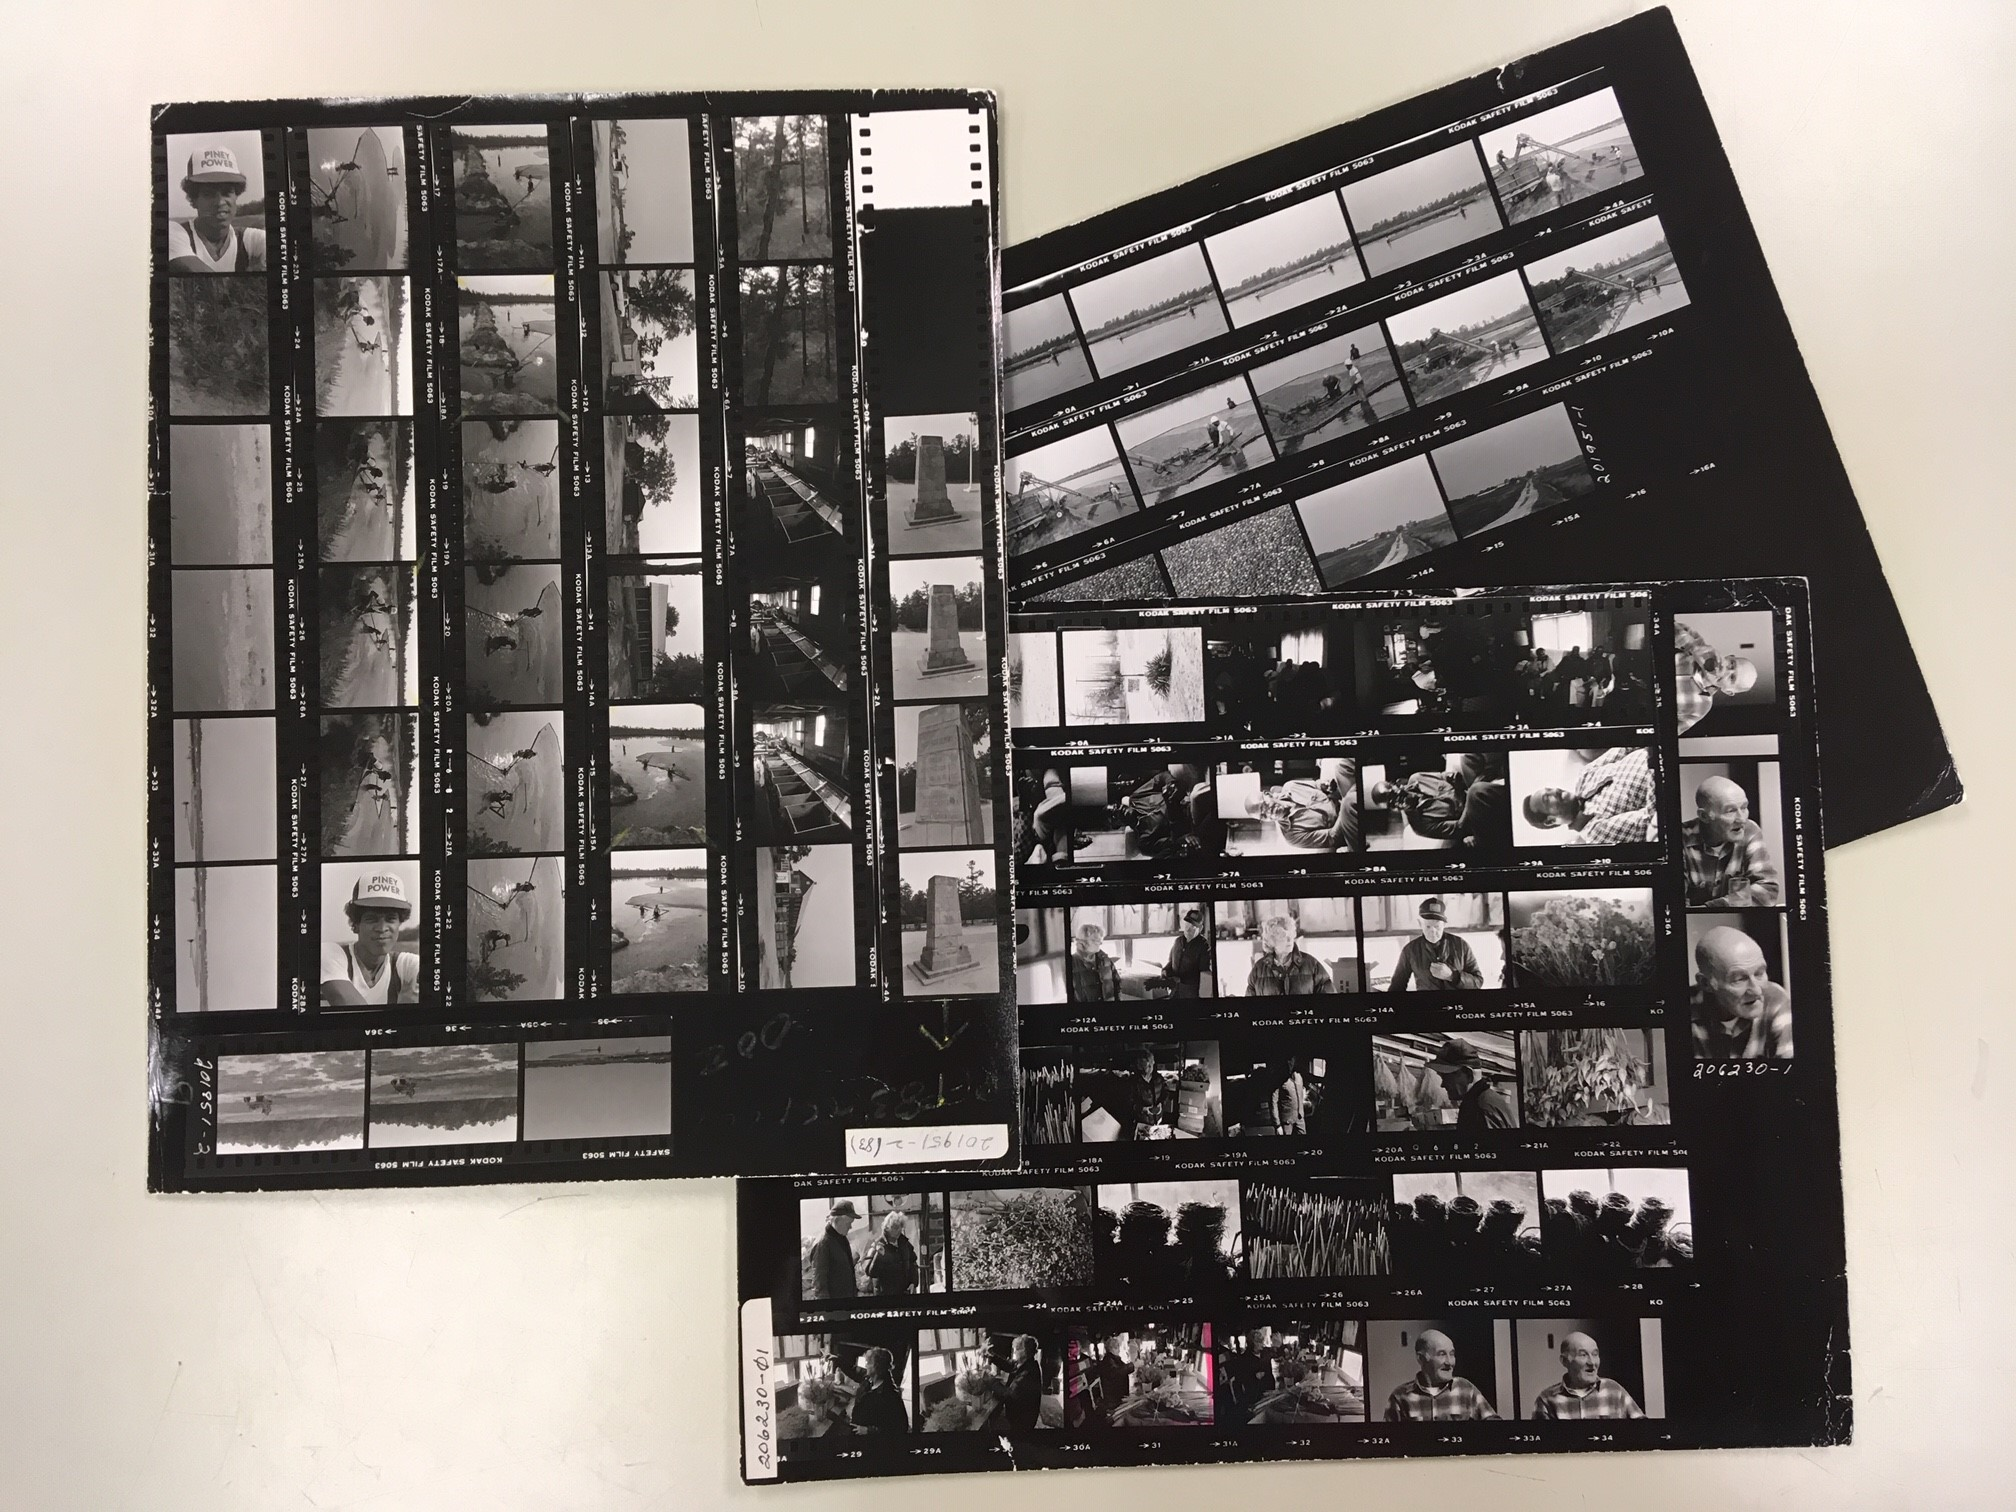 3 photograph contact sheets with many small images